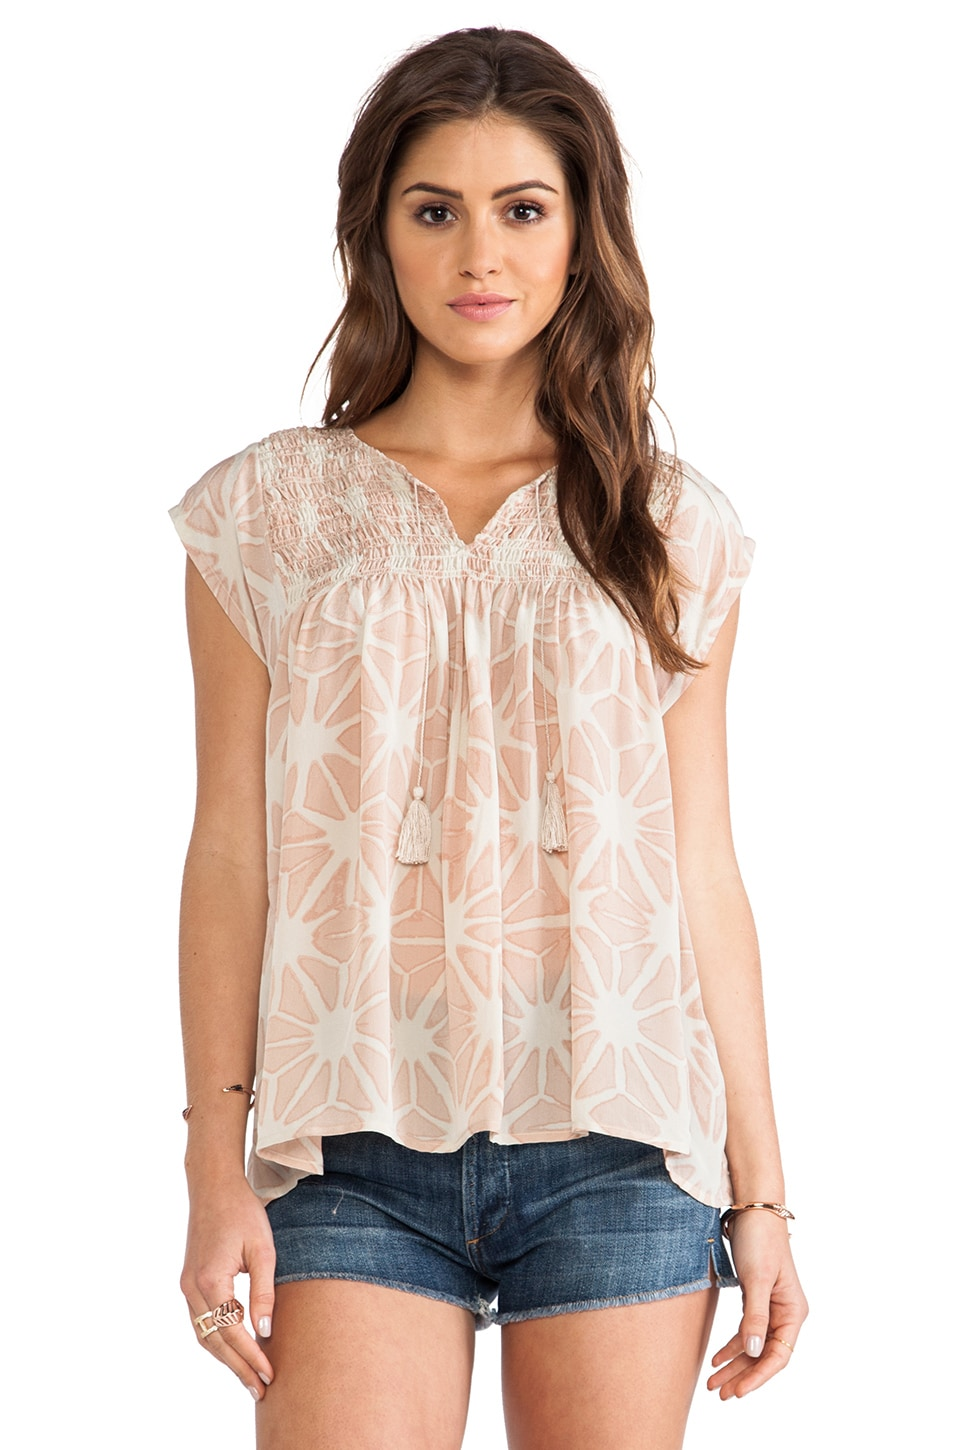 Ulla Johnson Costa Blouse in Seashell